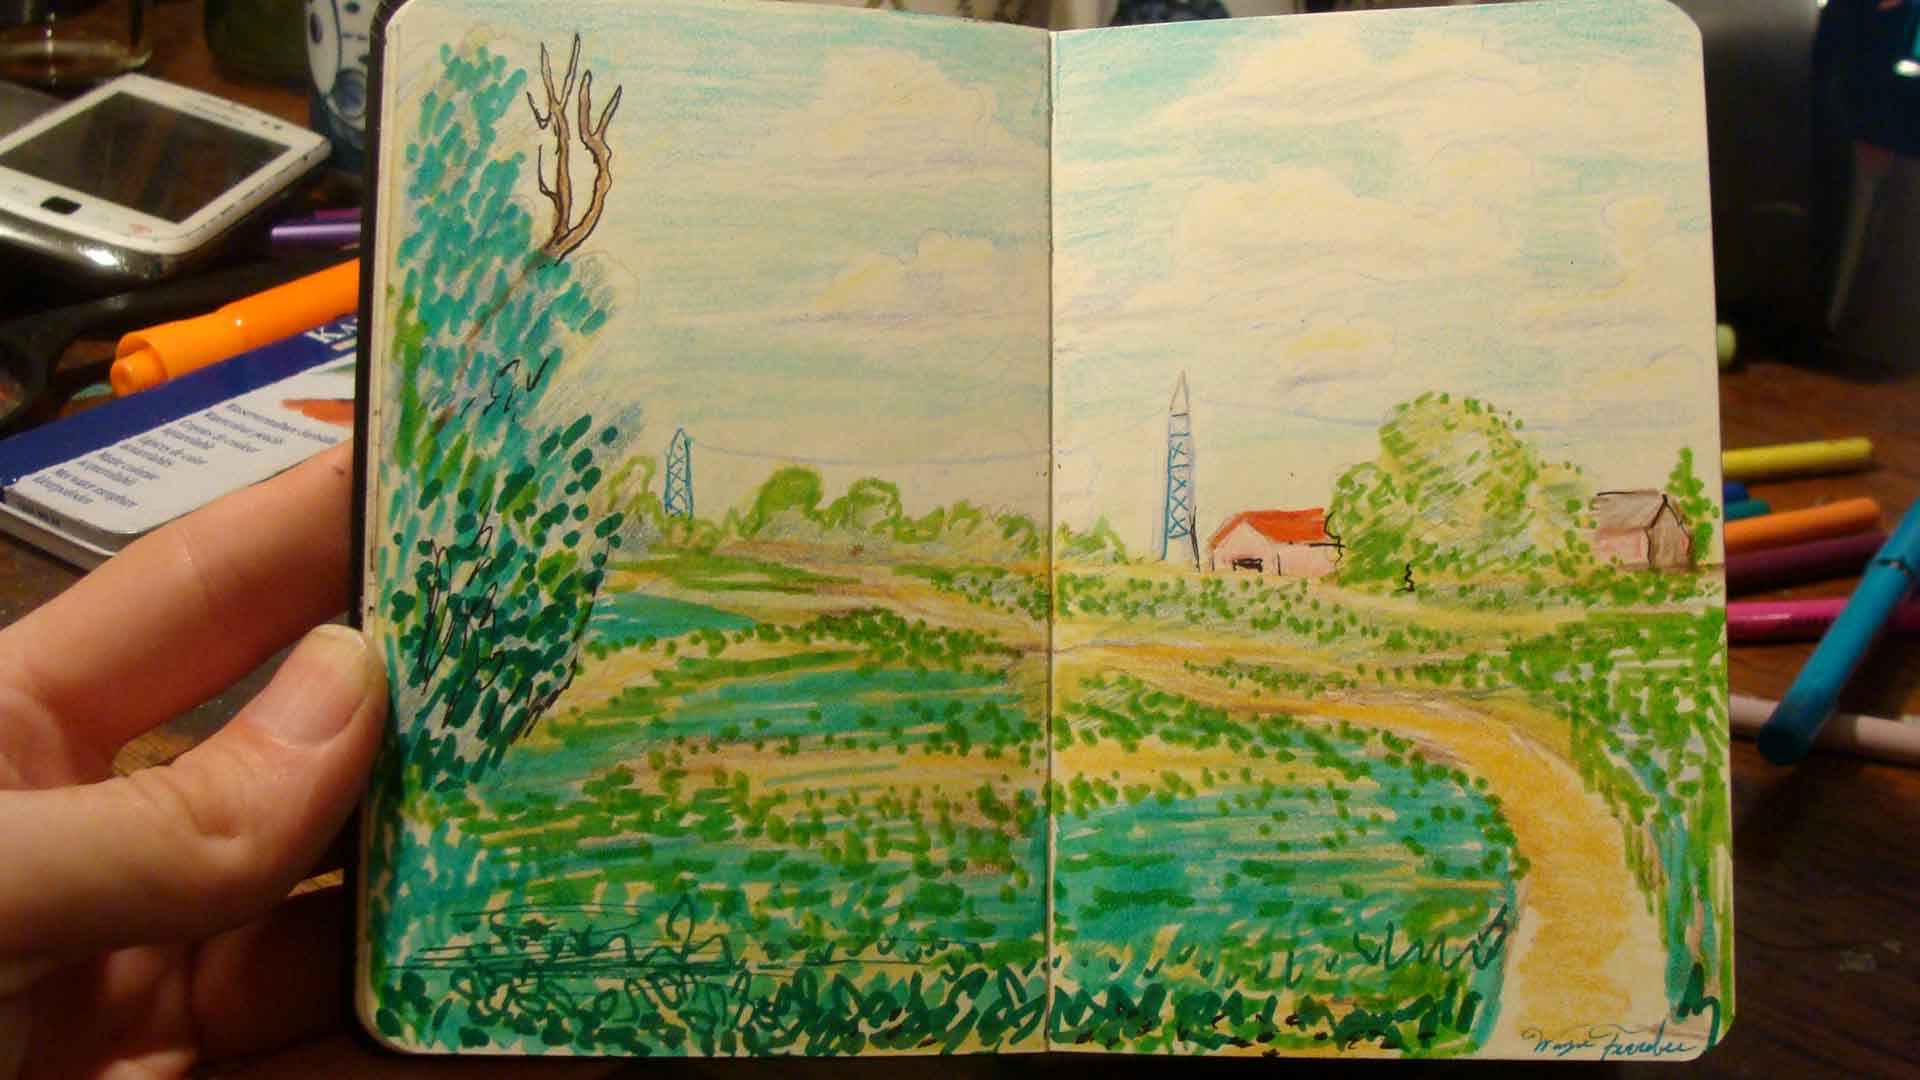 Soybean Field (Wayne Ferrebee, 2015, color pencil and ink)